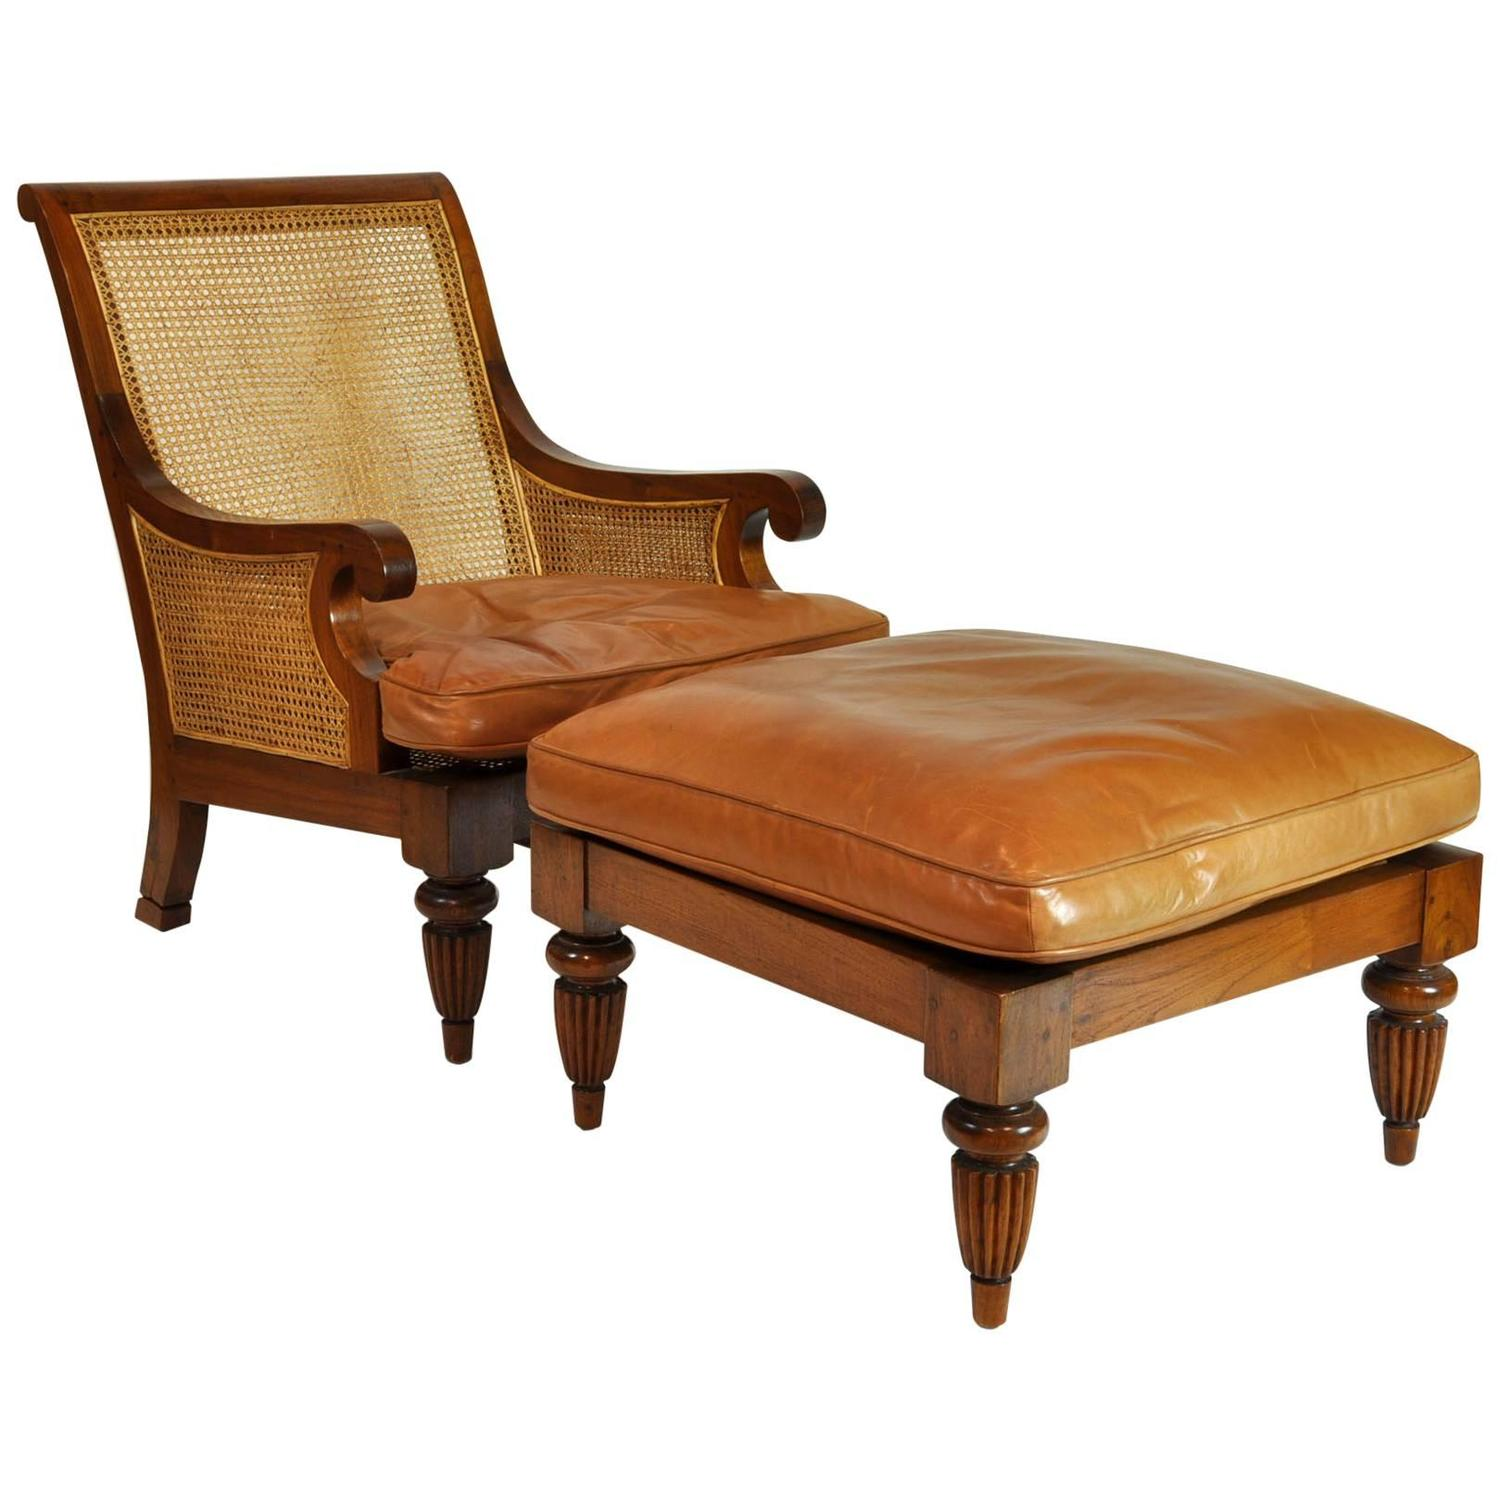 Prime British Colonial Imports Caned Leather Plantation Style Dailytribune Chair Design For Home Dailytribuneorg